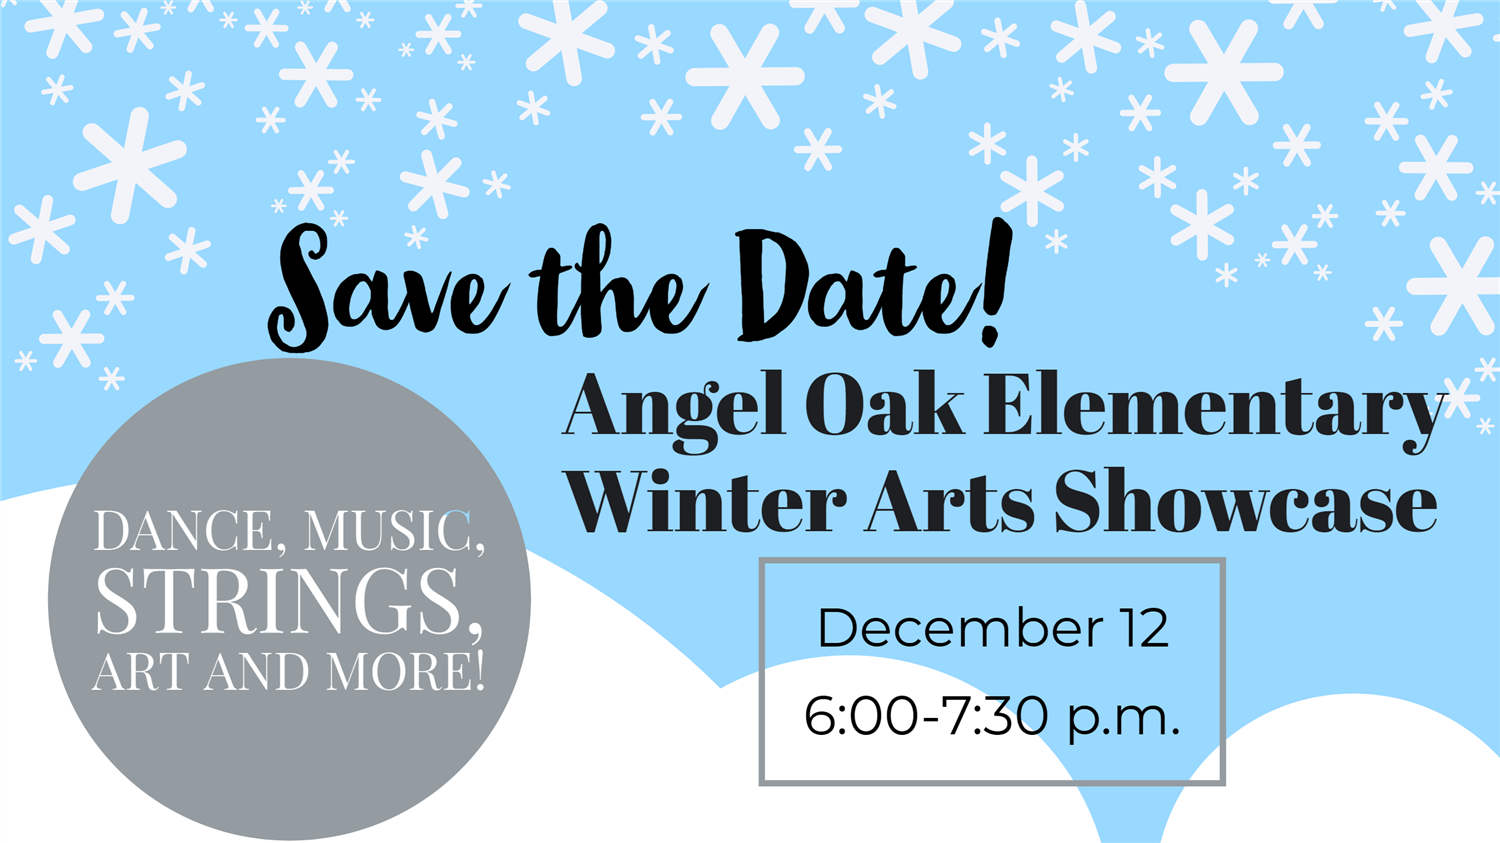 Winter Arts Showcase: Save the Date!